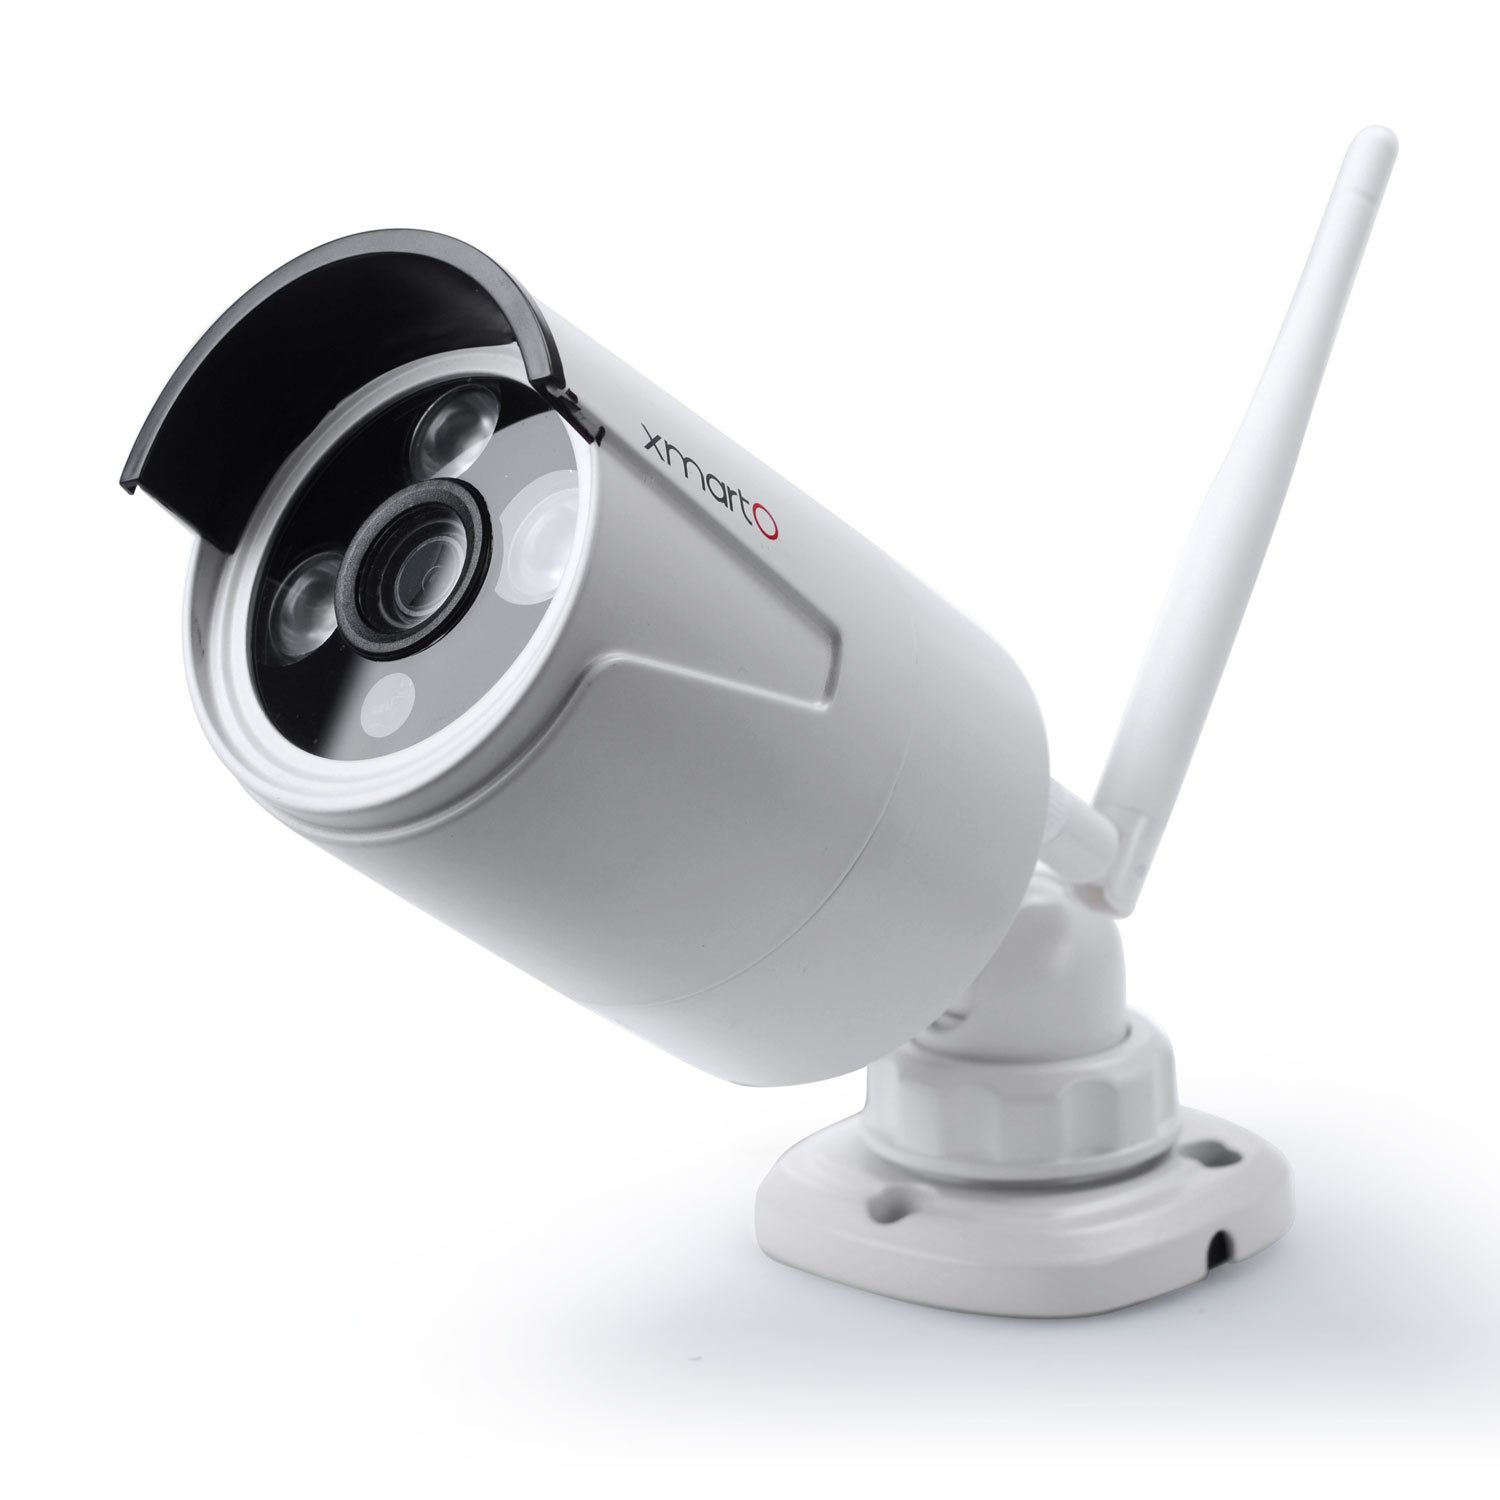 [Audio Video & 960p 4mm] xmartO WB1324 960p HD 1.3 Megapixel IP Network Wireless Security Camera Weatherproof Outdoor with 80ft IR Night Vision (White) by xmartO